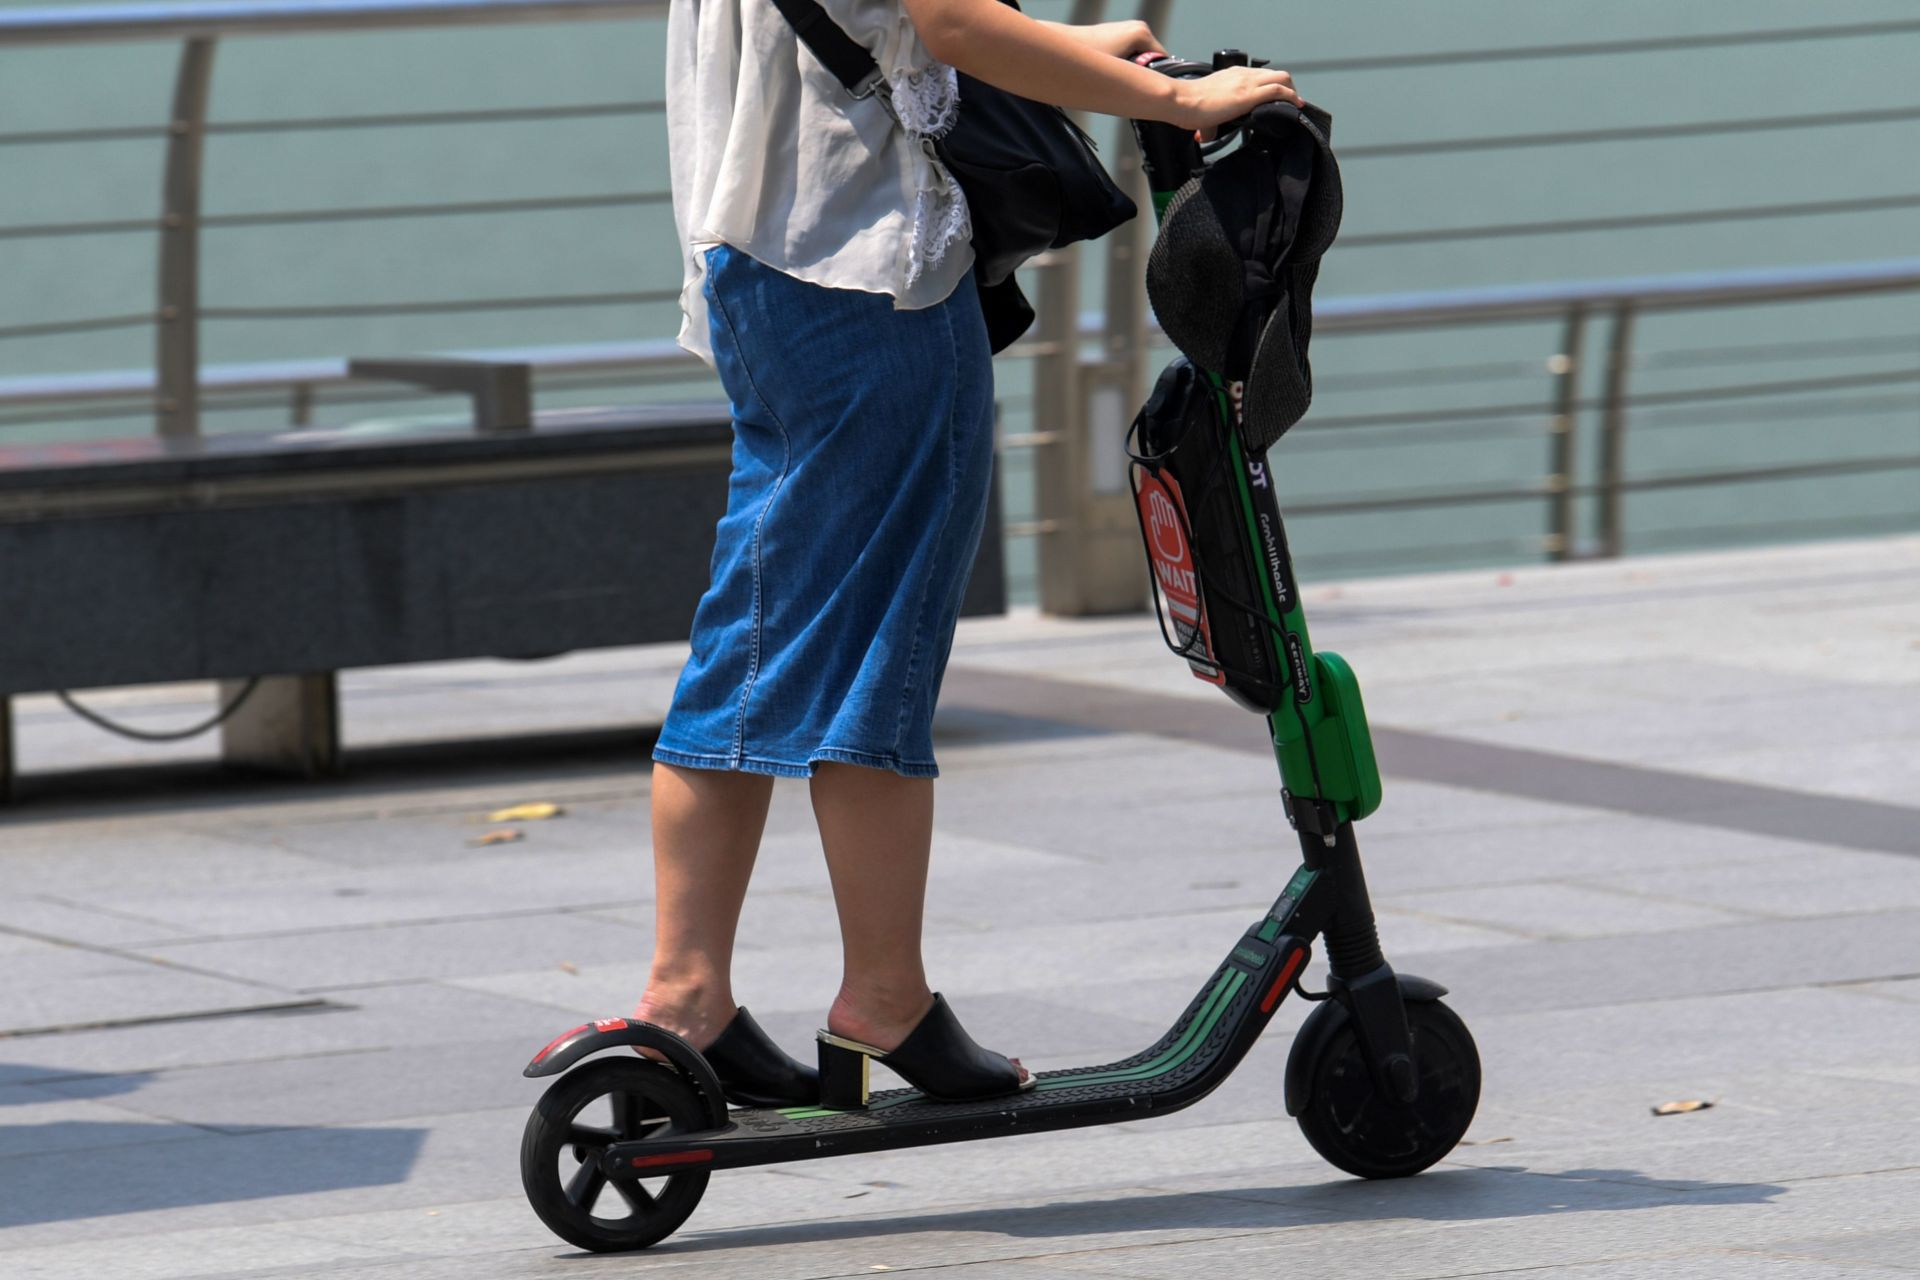 Tiny Singapore had embraced electric scooters in a big way, but deaths and fires linked to the two-wheelers have prompted authorities to introduce tough rules that could put a brake on their runaway success. — AFP